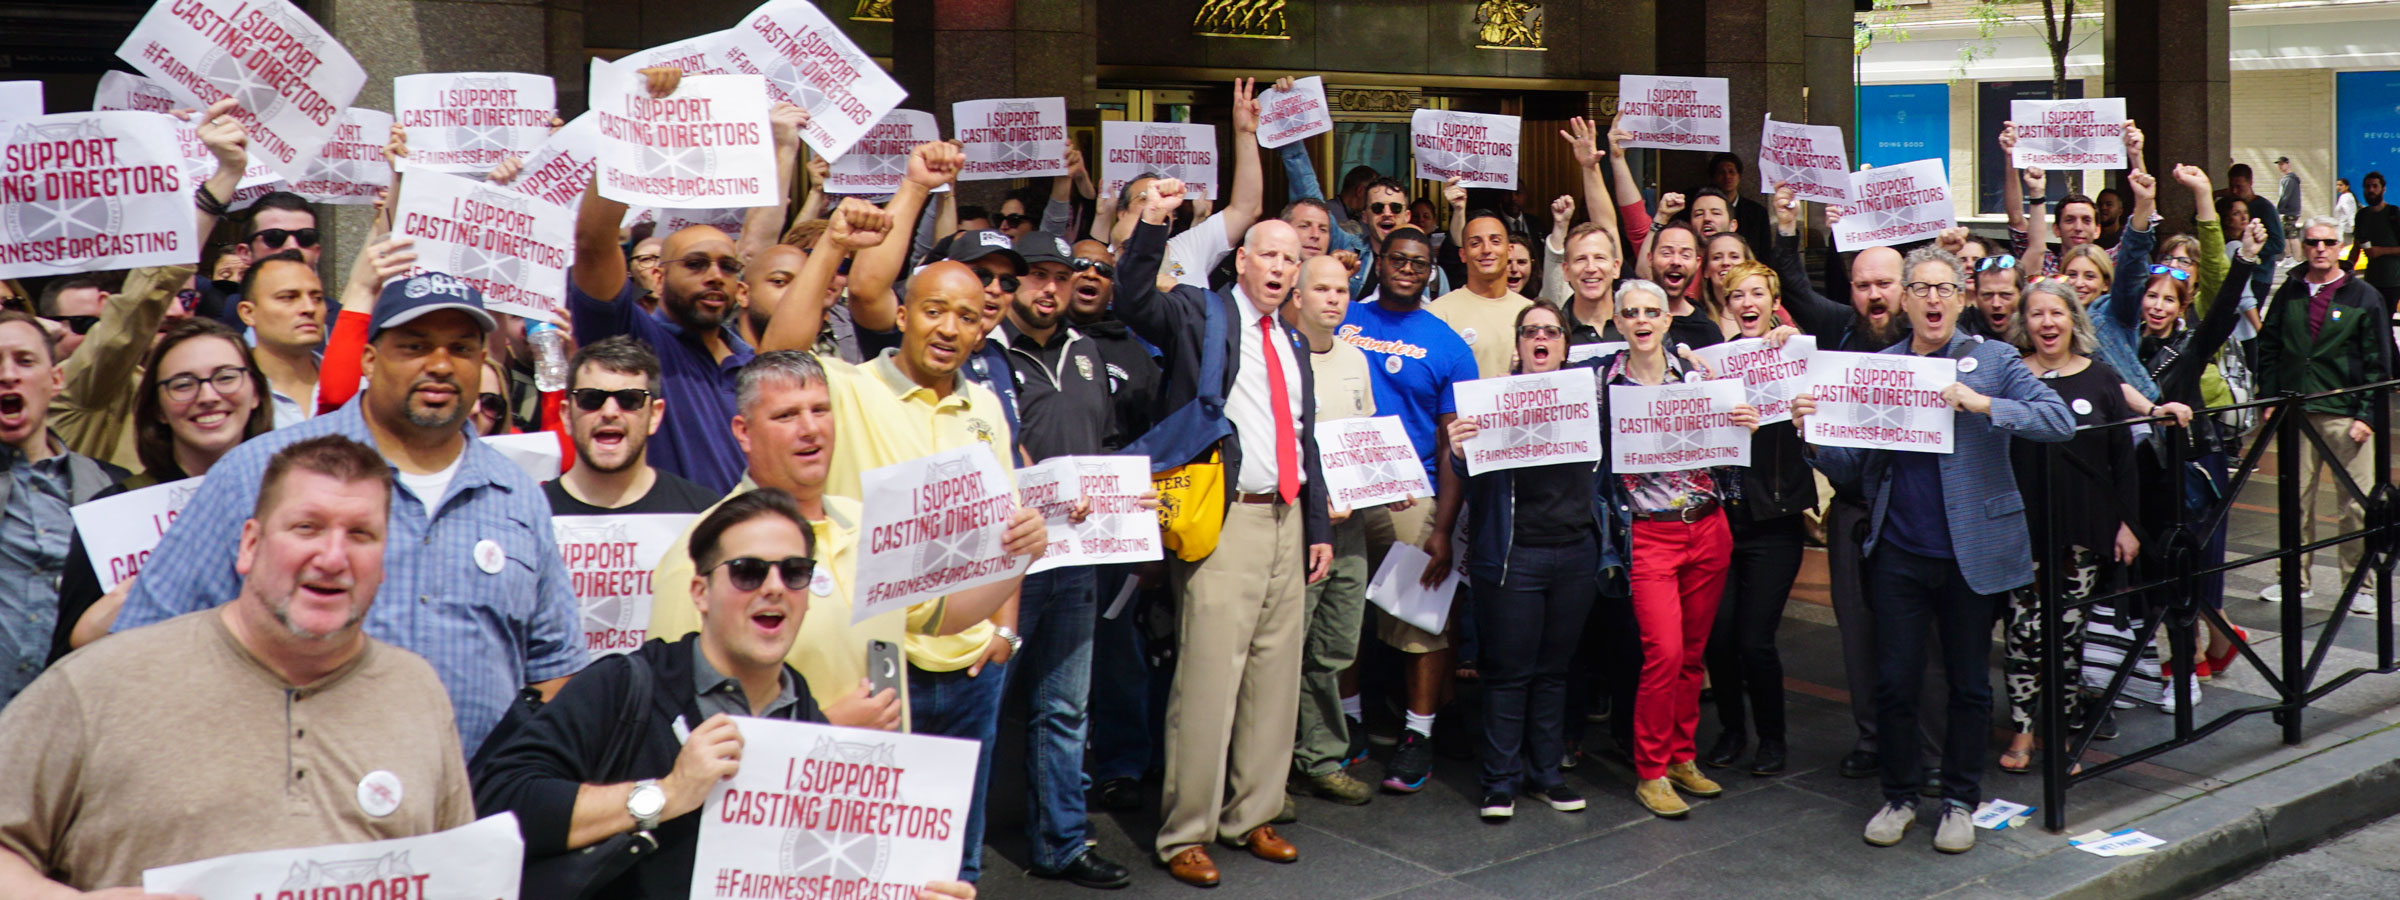 Casting Directors Rally for Union and Healthcare